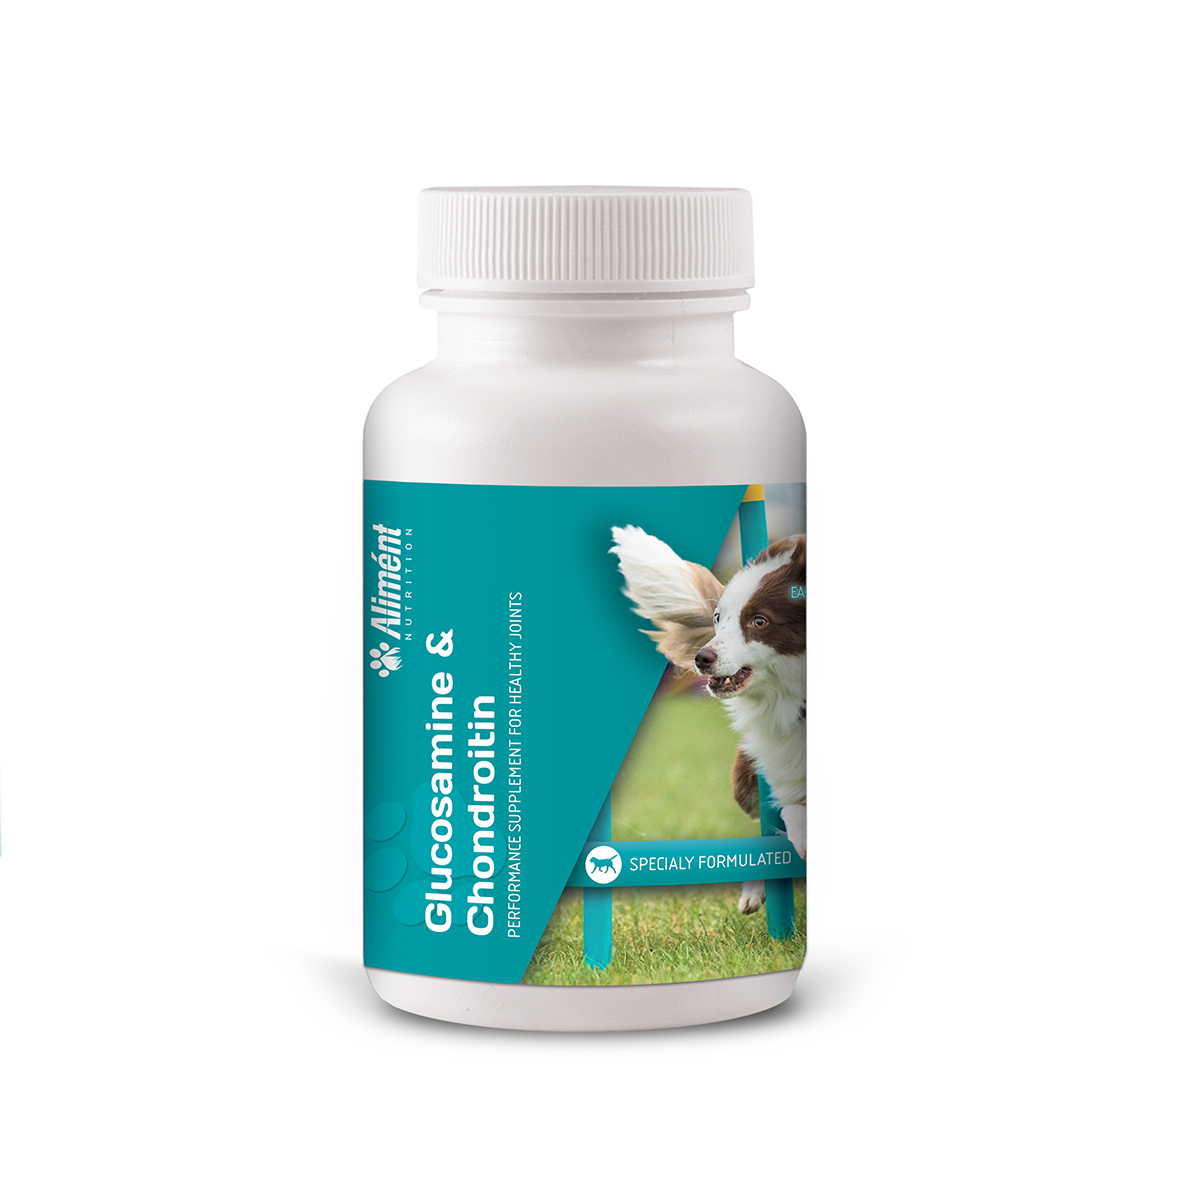 glucosamine and chondroitin for dogs